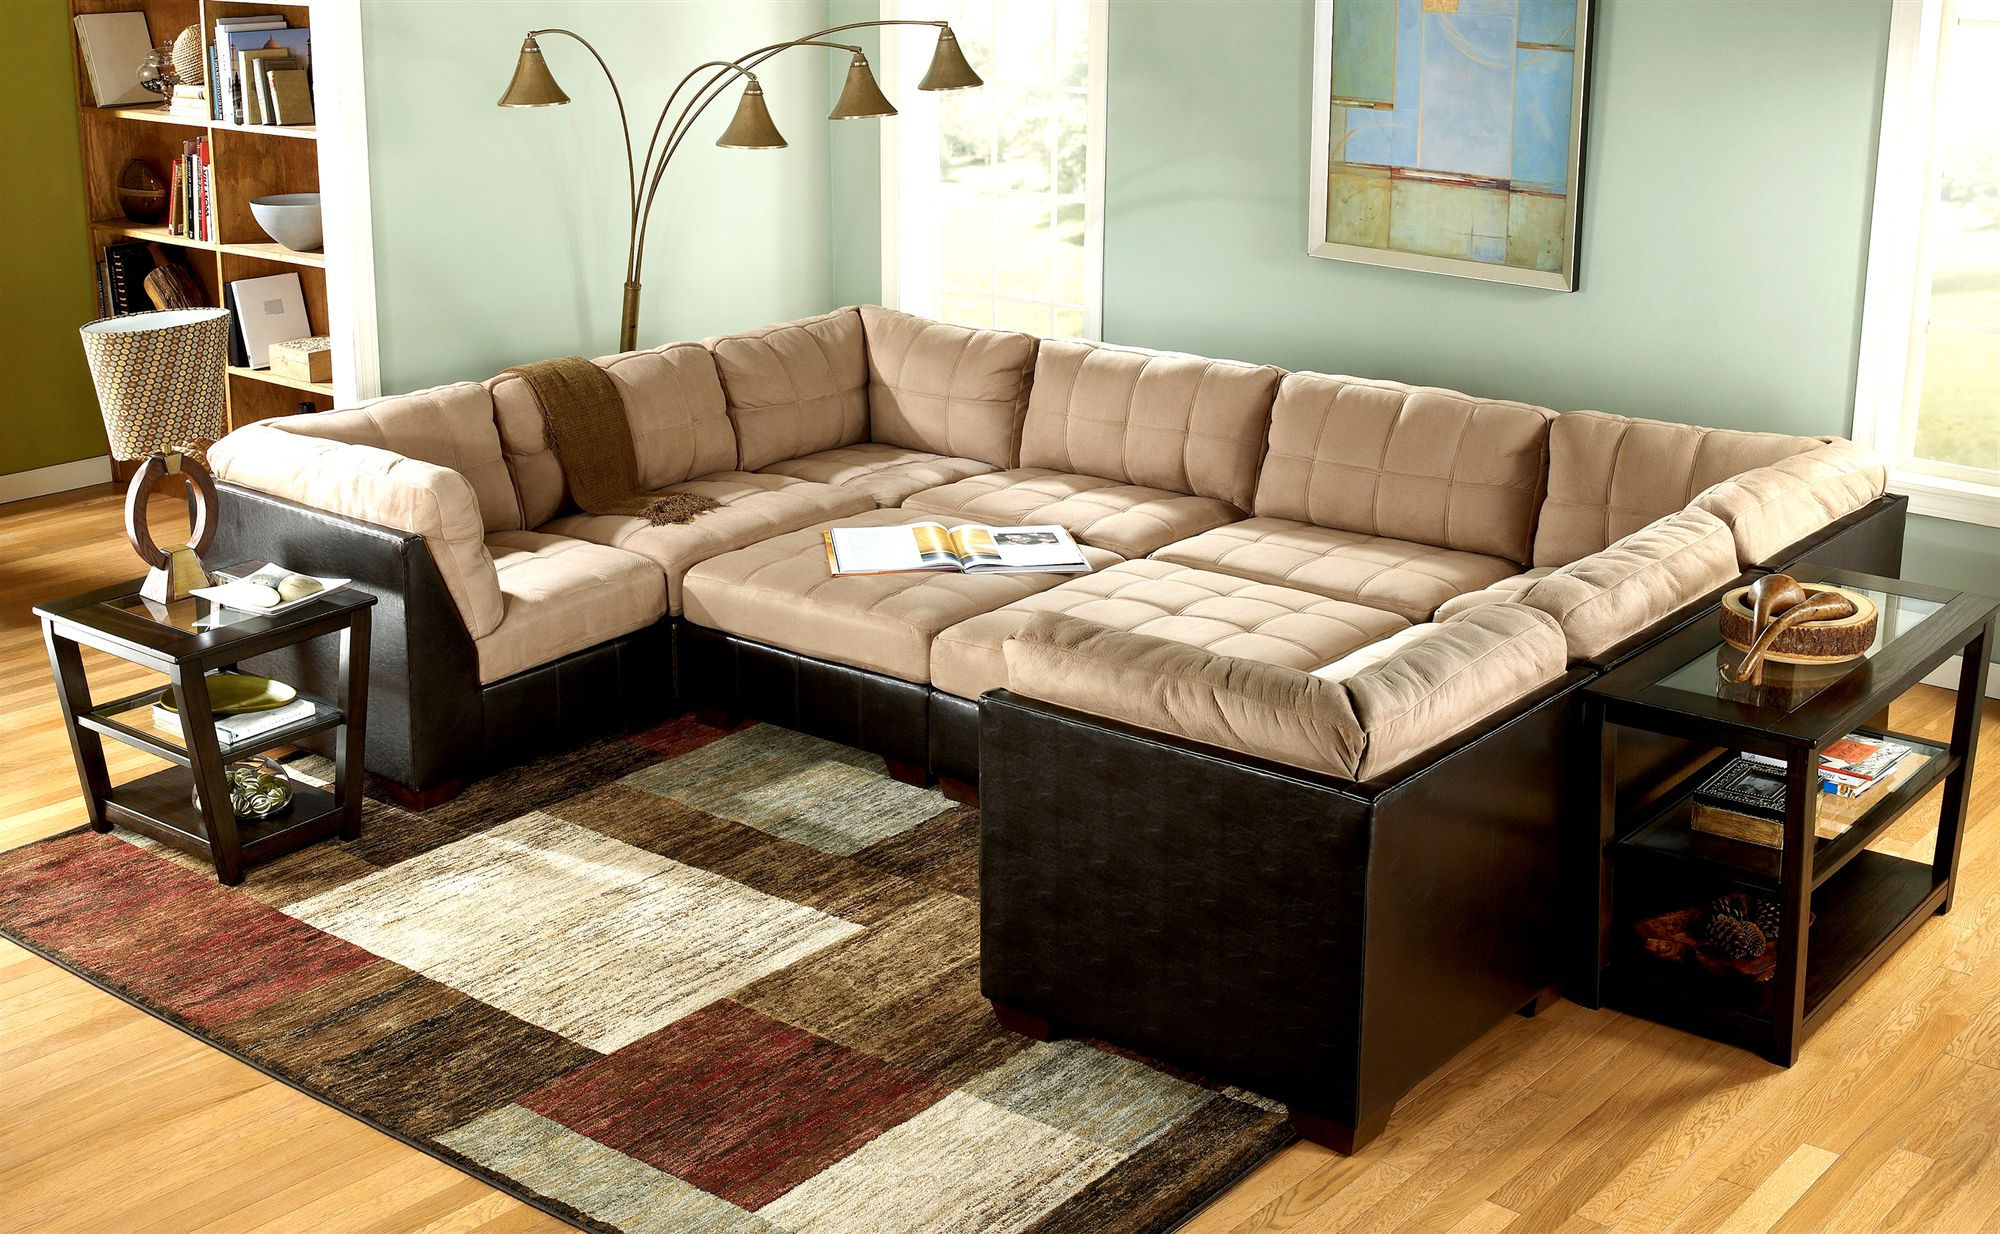 Living room ideas with sectionals sofa for small living room roy home design - Living room sectional design ideas ...